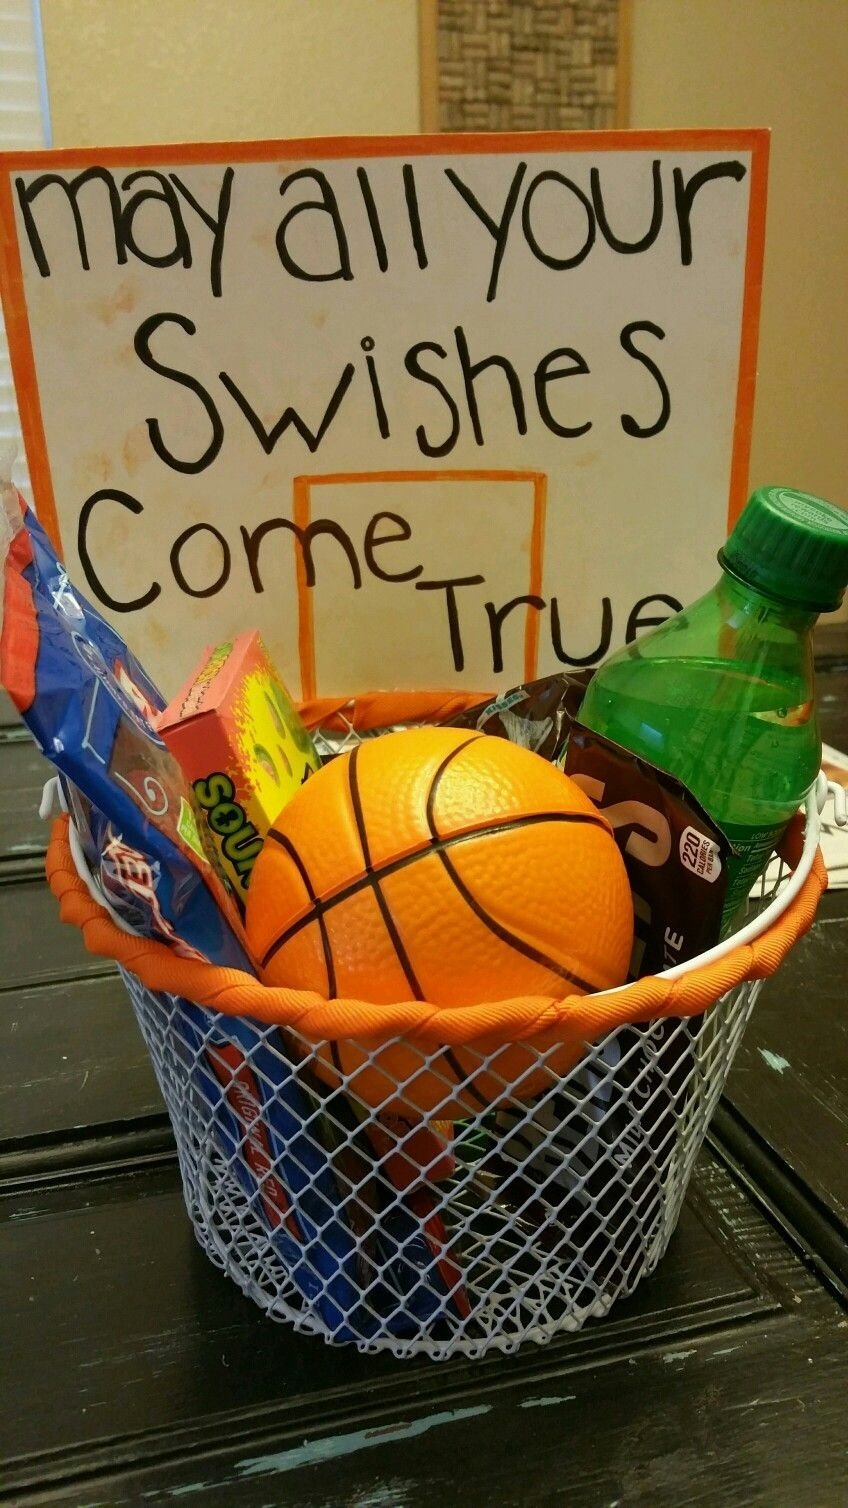 may all your swishes come true. basketball gift basket. we found